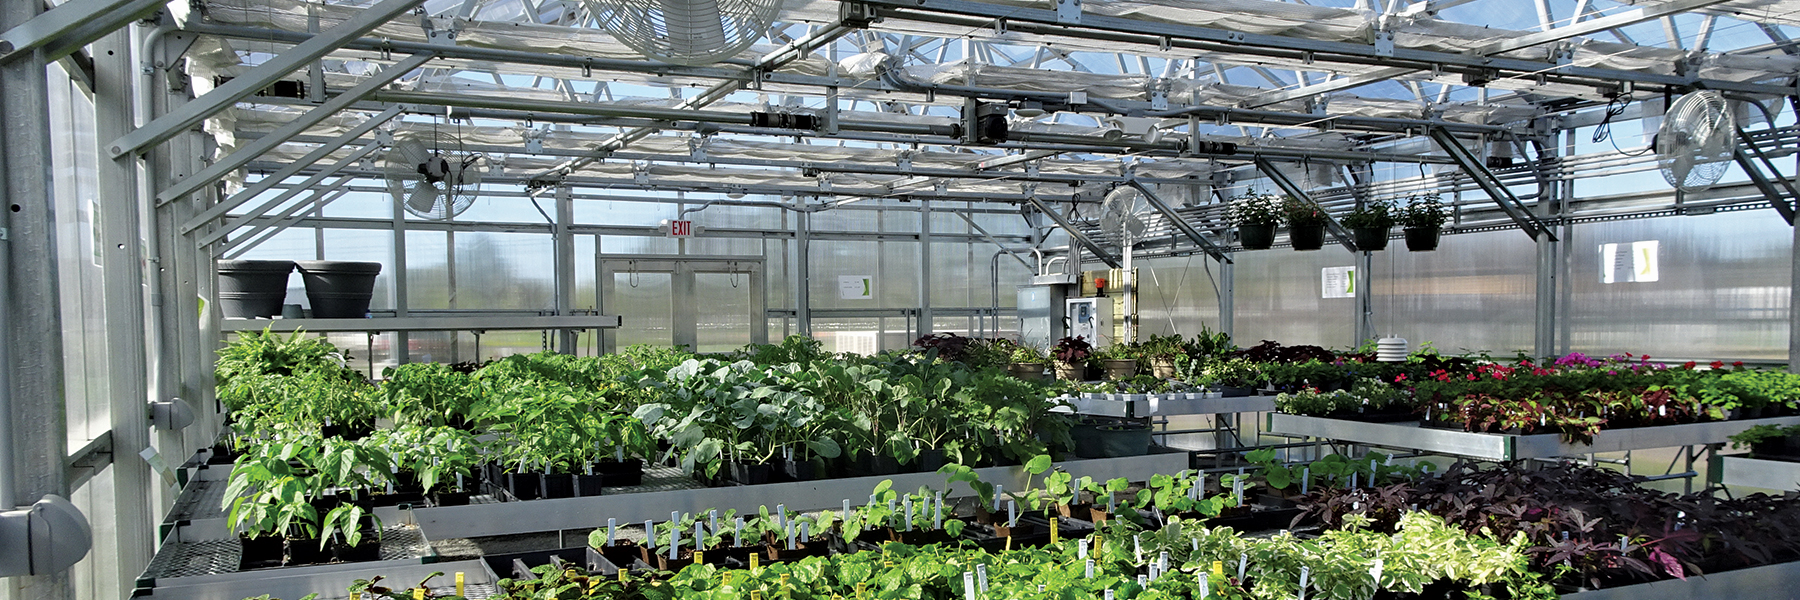 Chippewa valley Greenhouse